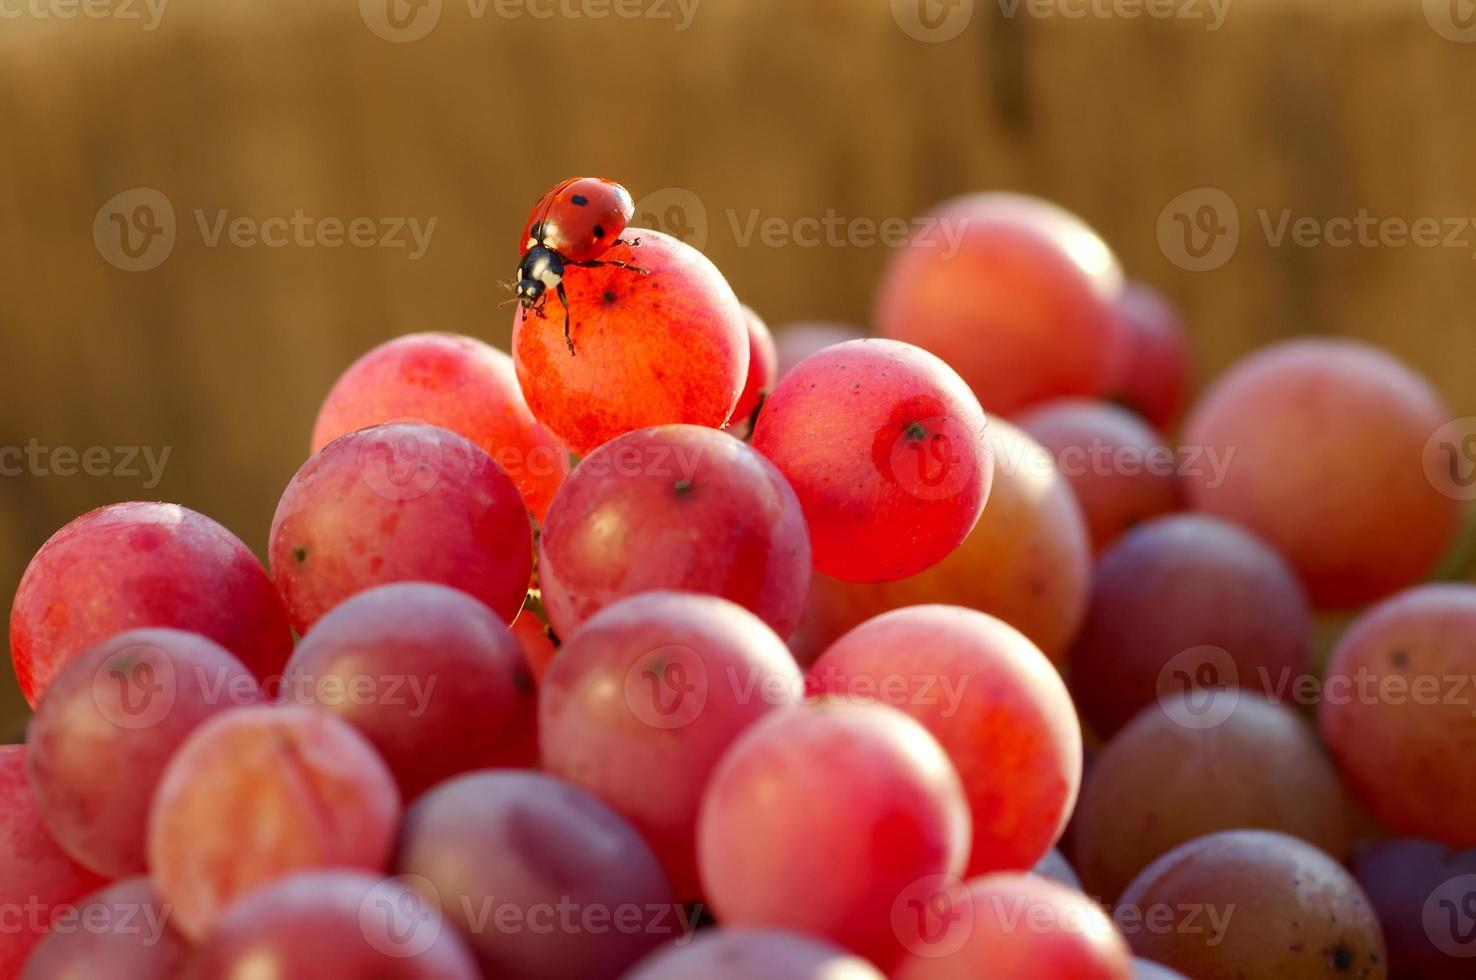 Ladybird and grapes photo